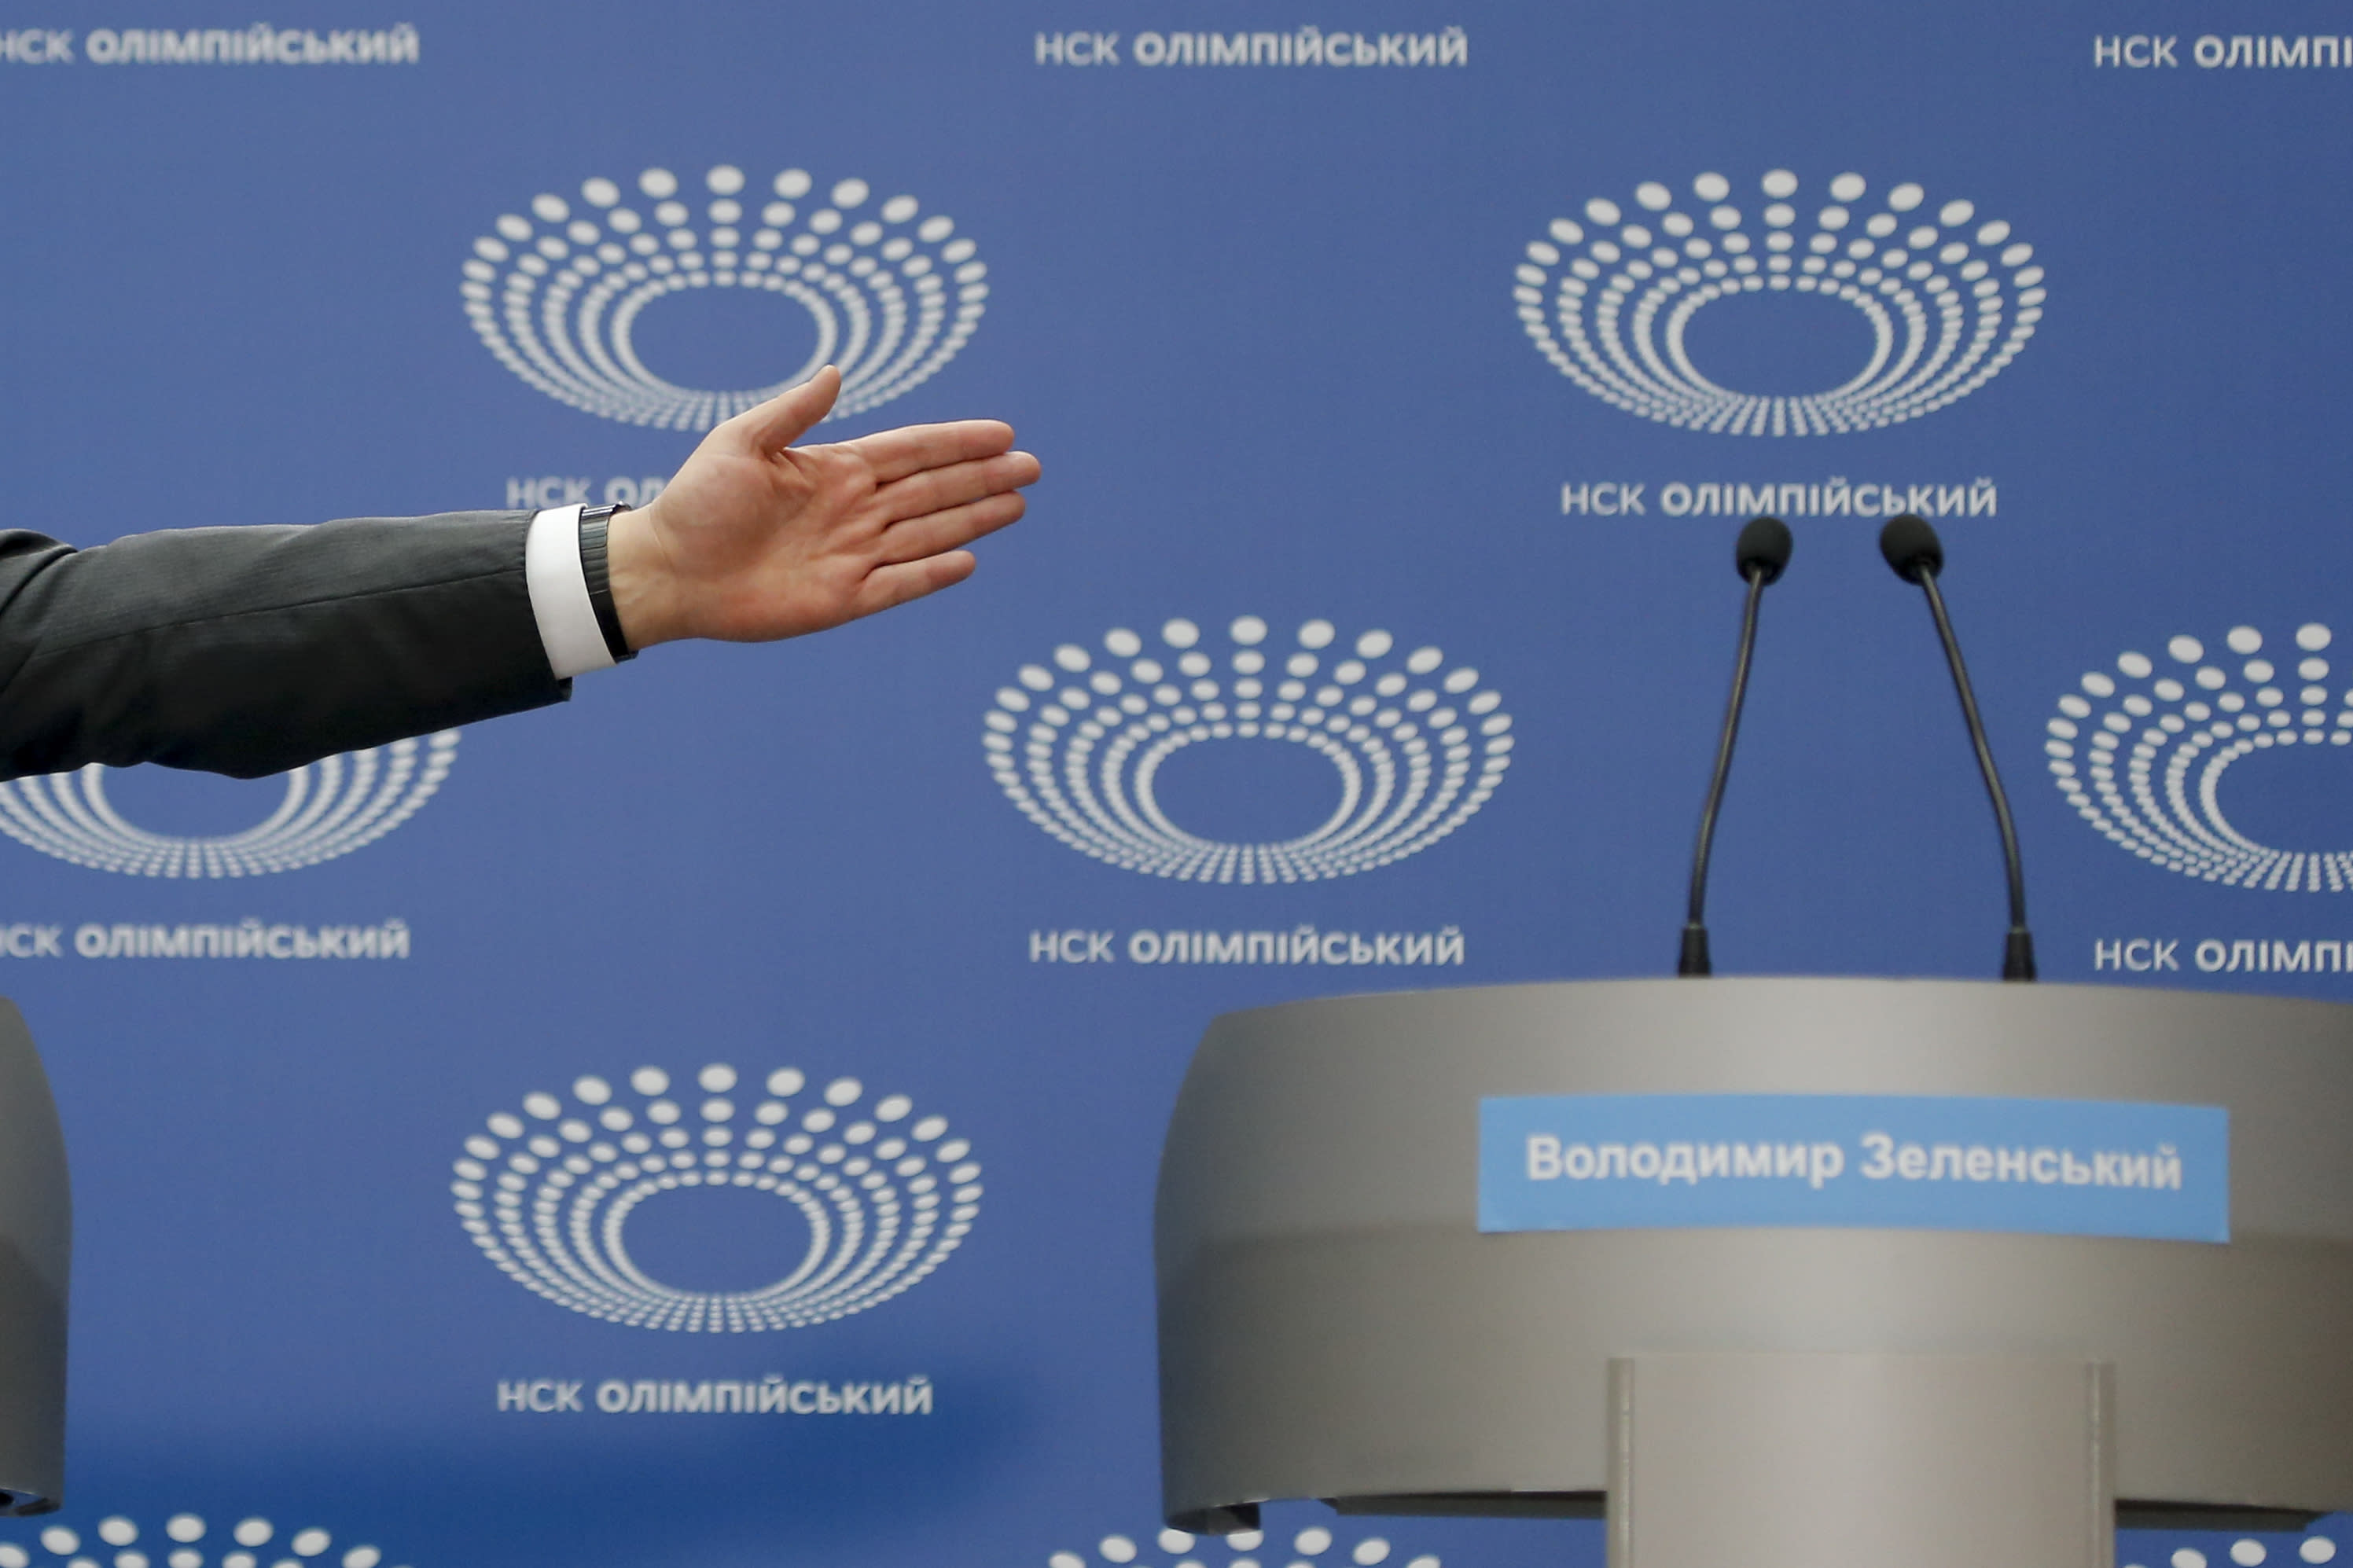 Ukrainian President Petro Poroshenko gestures toward a tribune with Volodymyr Zelenskiy's name written on it, as he answers a journalist's question ahead of the presidential elections on April 21, at the Olympic stadium in Kiev, Ukraine, Sunday, April 14, 2019. Zelenskiy, who's never held office, challenged Poroshenko to take part in a debate in the stadium two days before the election, but Poroshenko wanted it to be held Sunday. (AP Photo/Efrem Lukatsky)